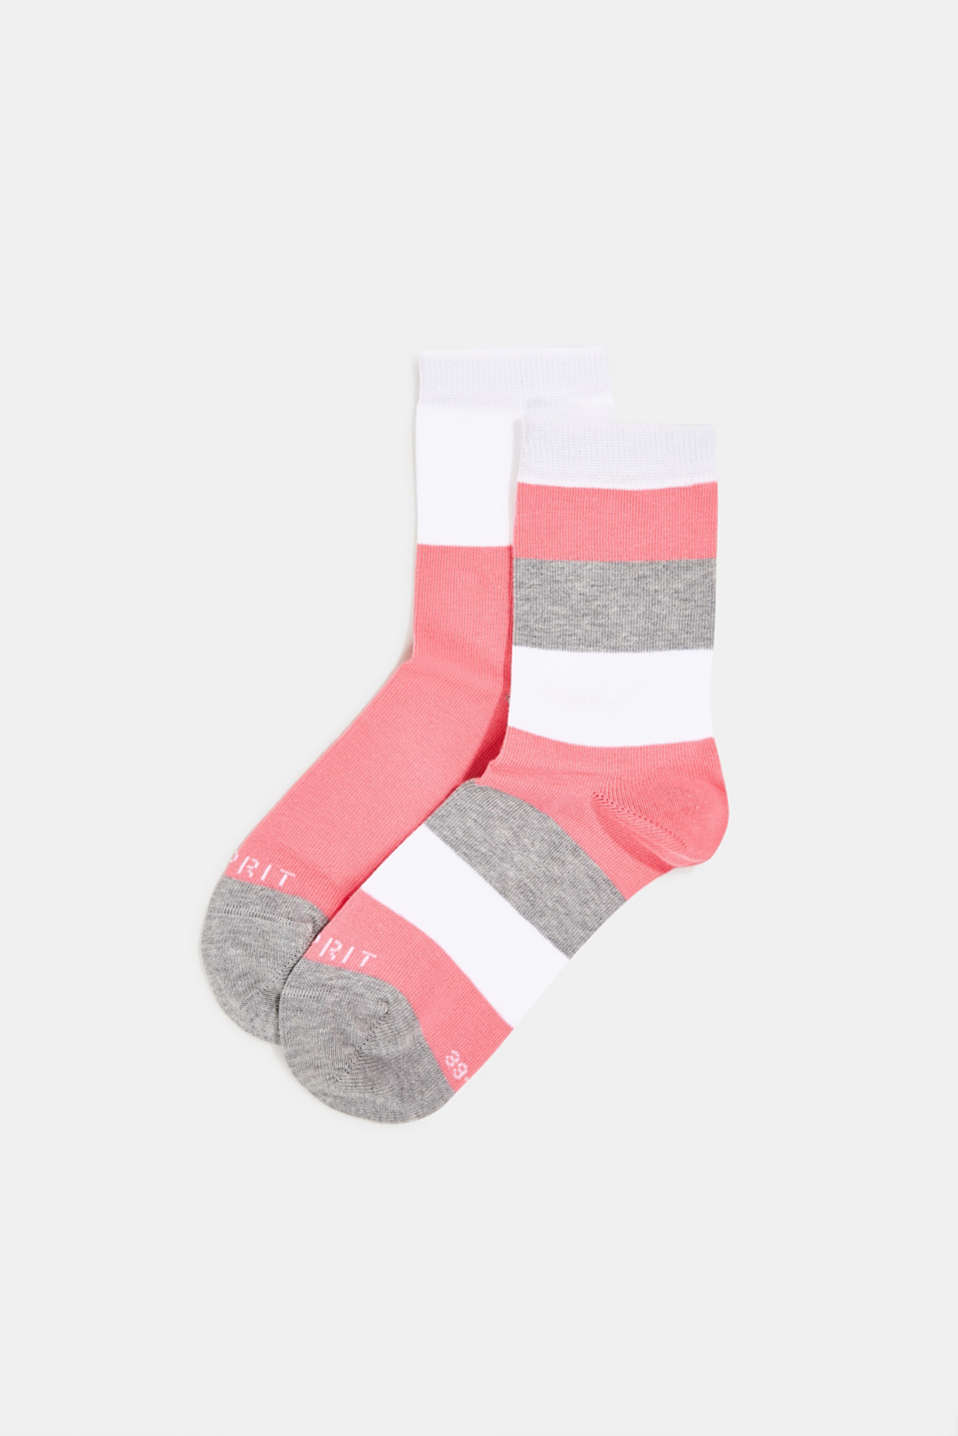 Esprit - Double pack of socks with block stripes